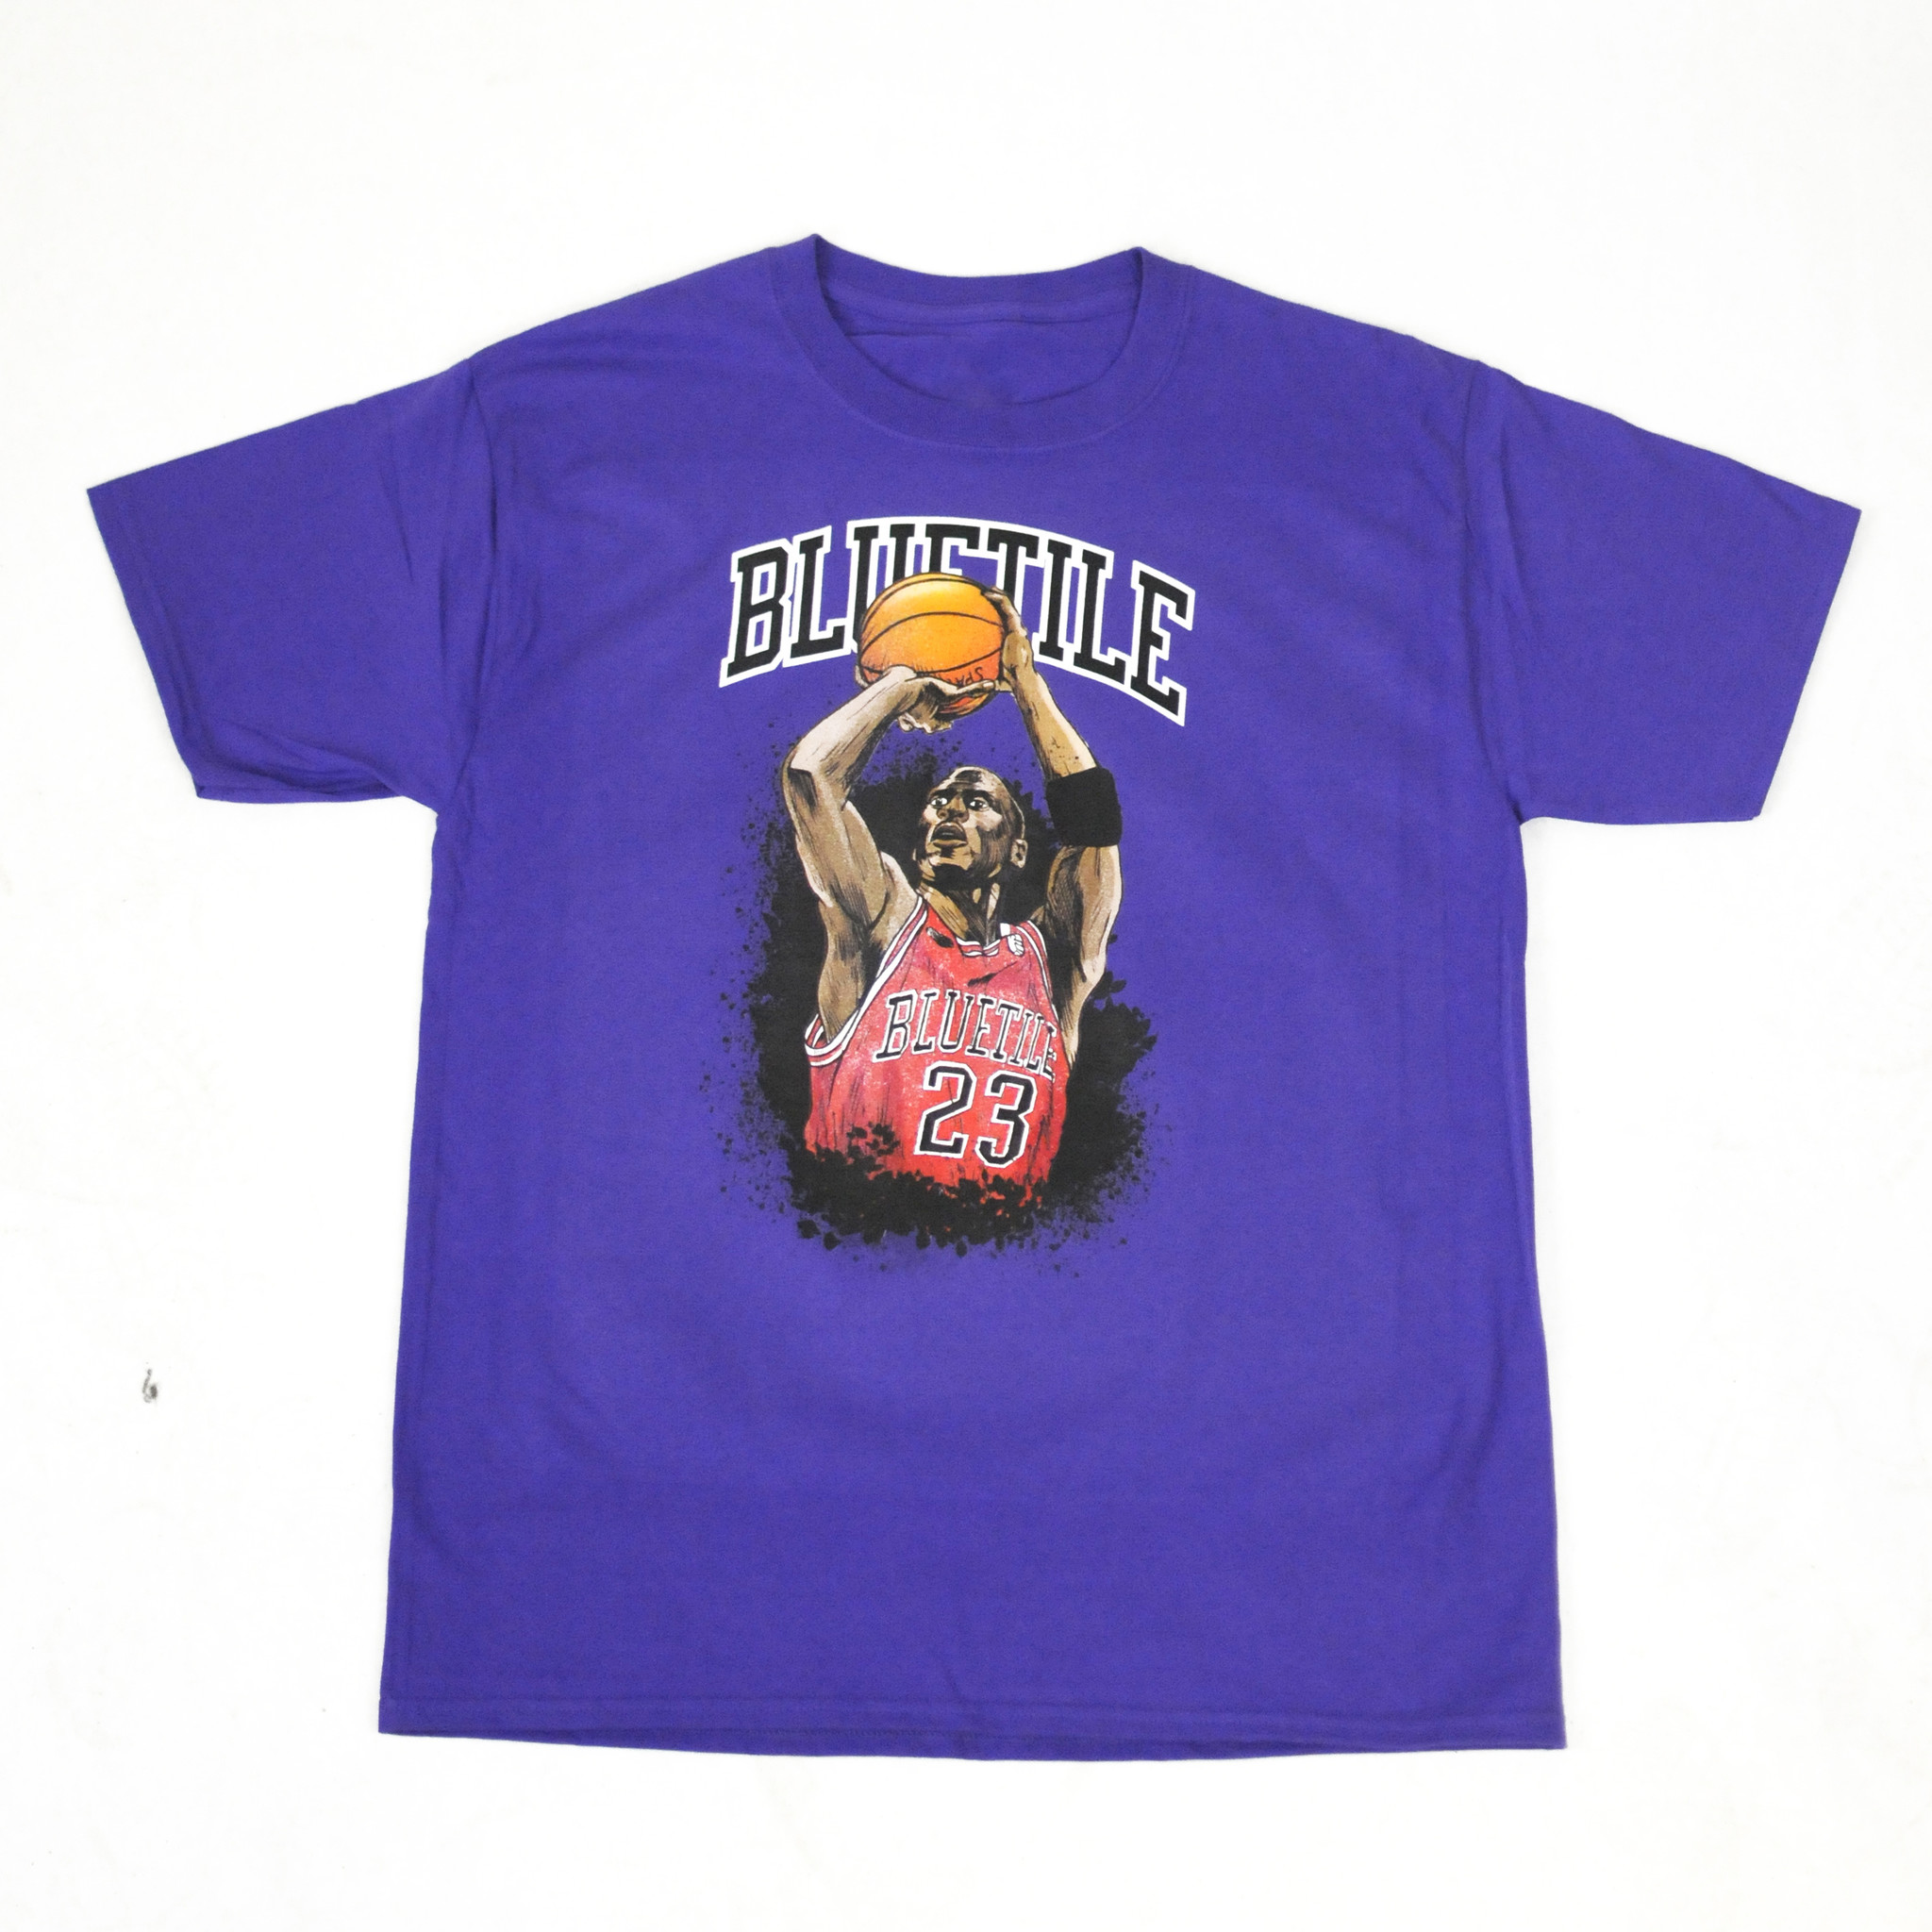 BLUETILE BLUETILE JUMP SHOT T-SHIRT PURPLE